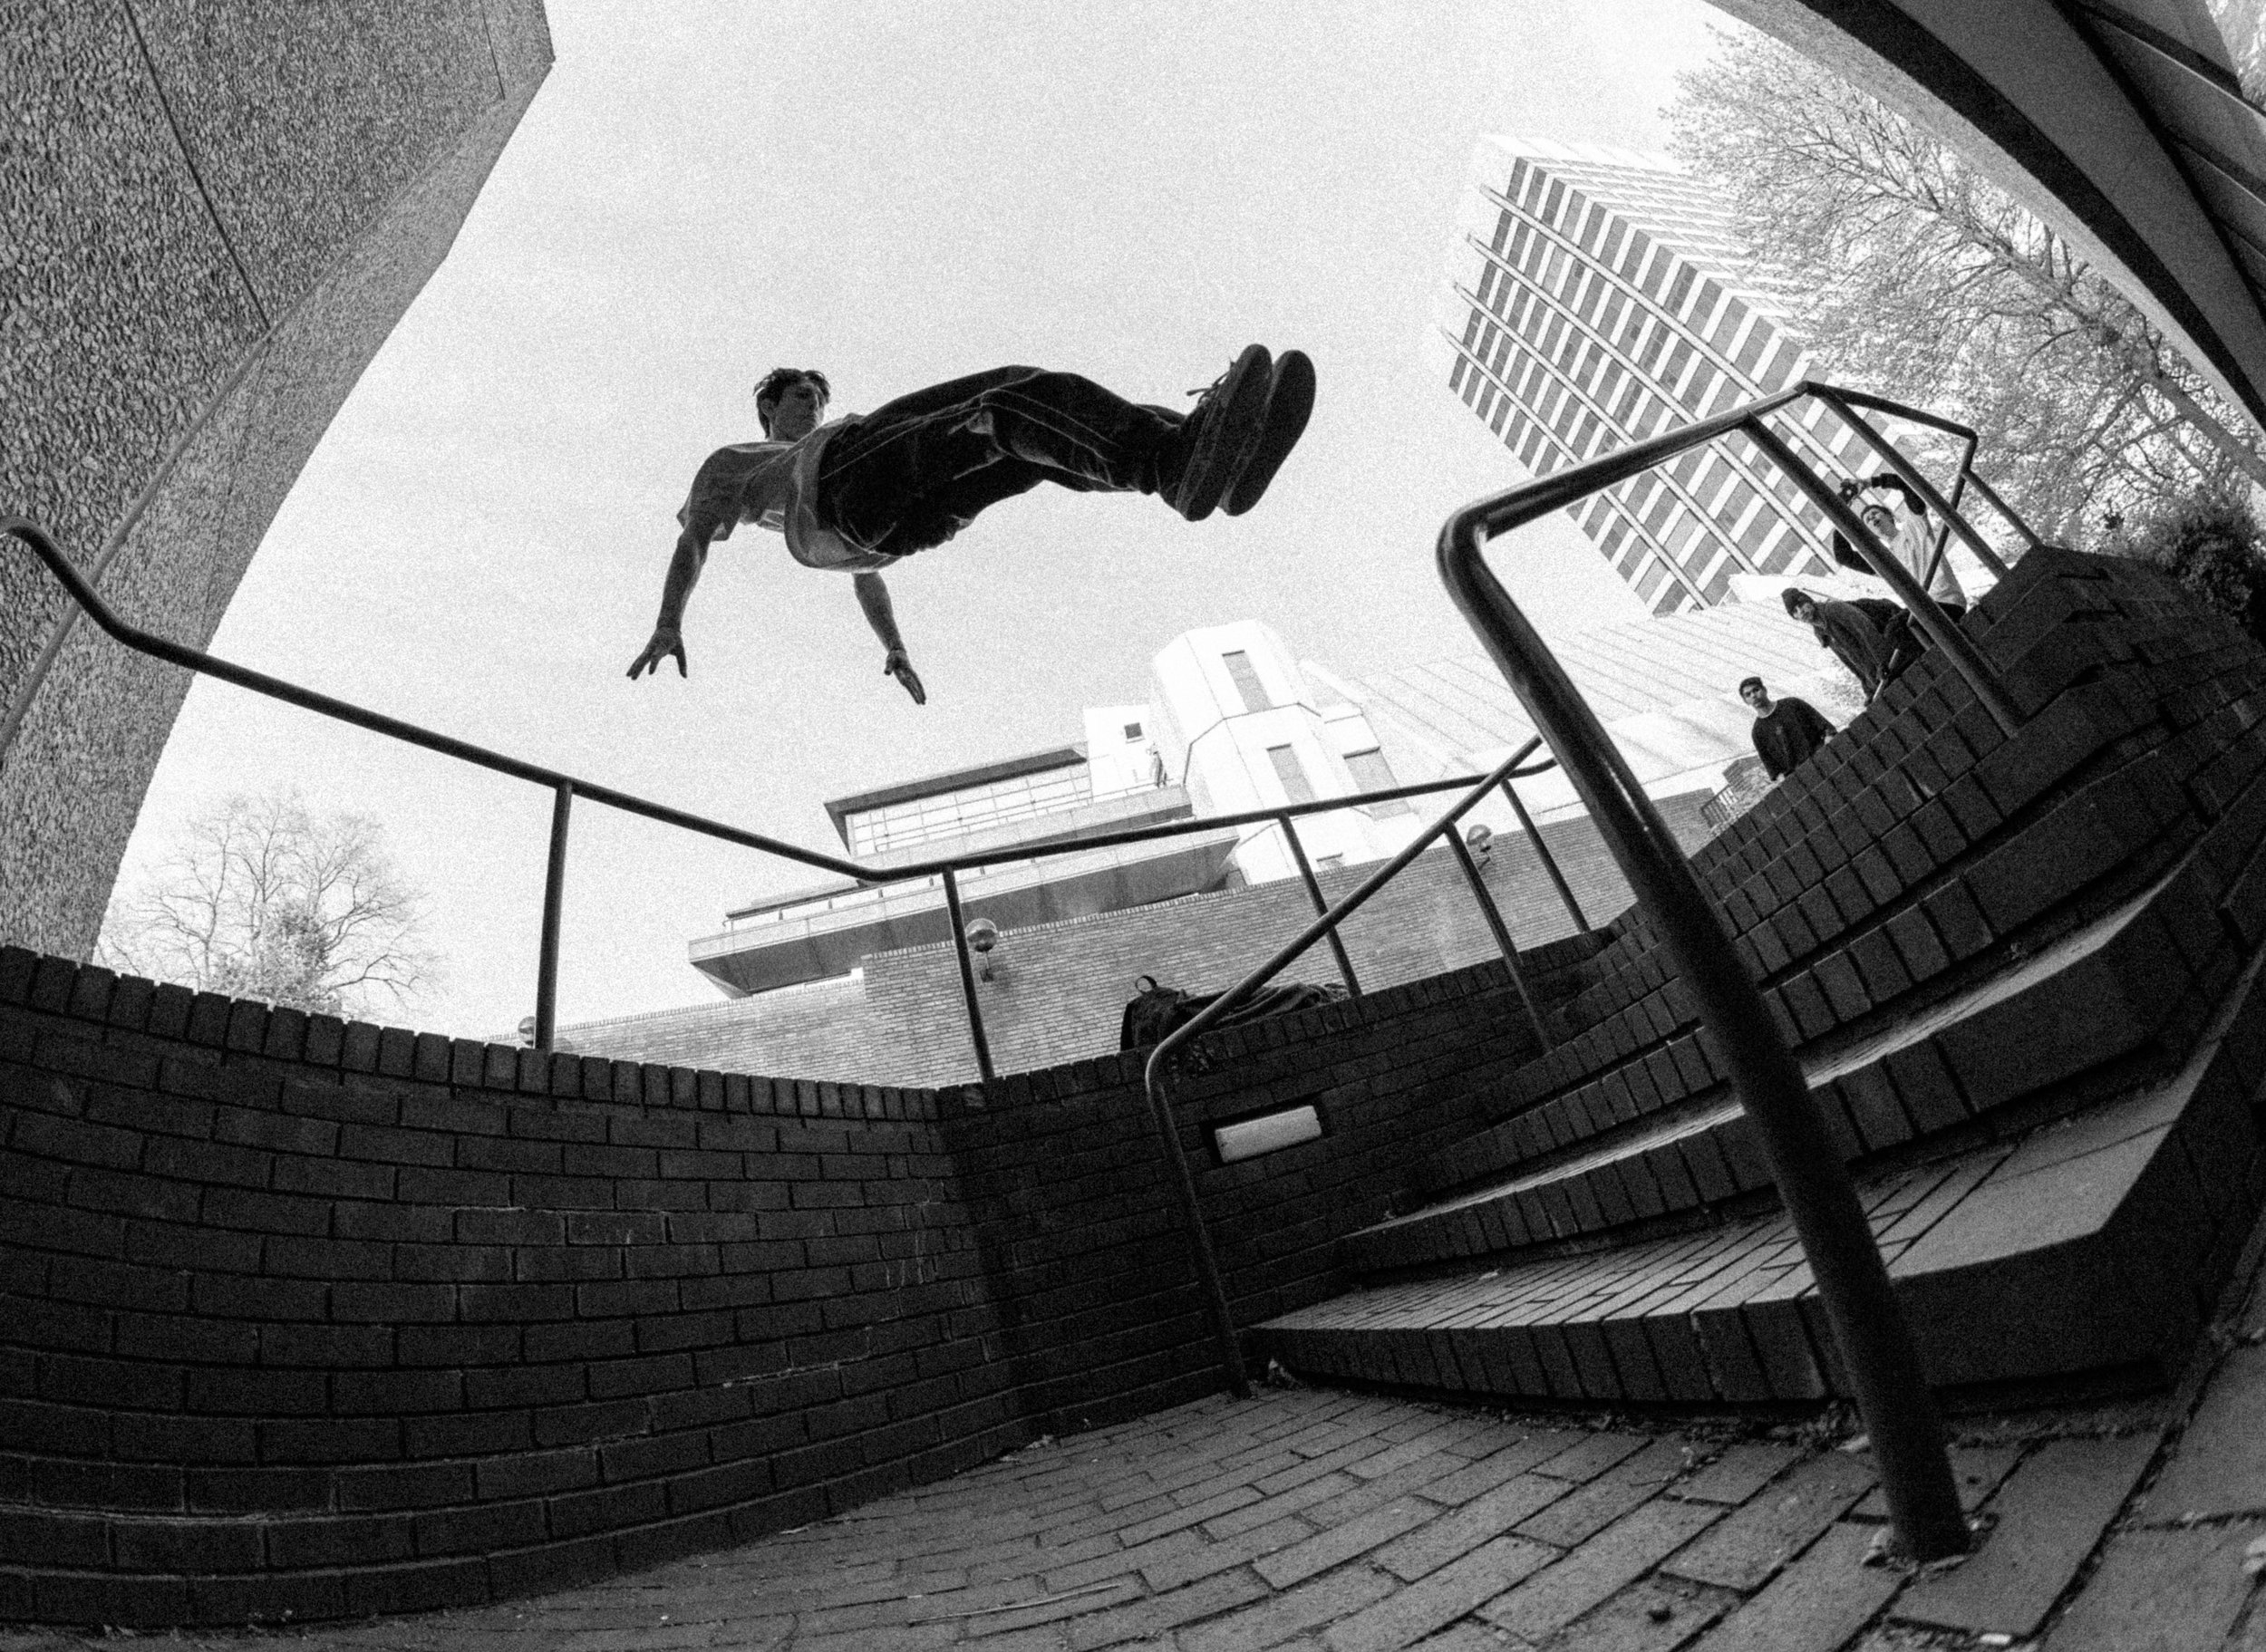 PHOTO: ACTION SHOT - We're looking for the perfect capture of a (100% real) Parkour movement. We want your photos to show the moment as genuinely as possible and we want to be able to gauge whats going on in the photo (no fake air form poses!)